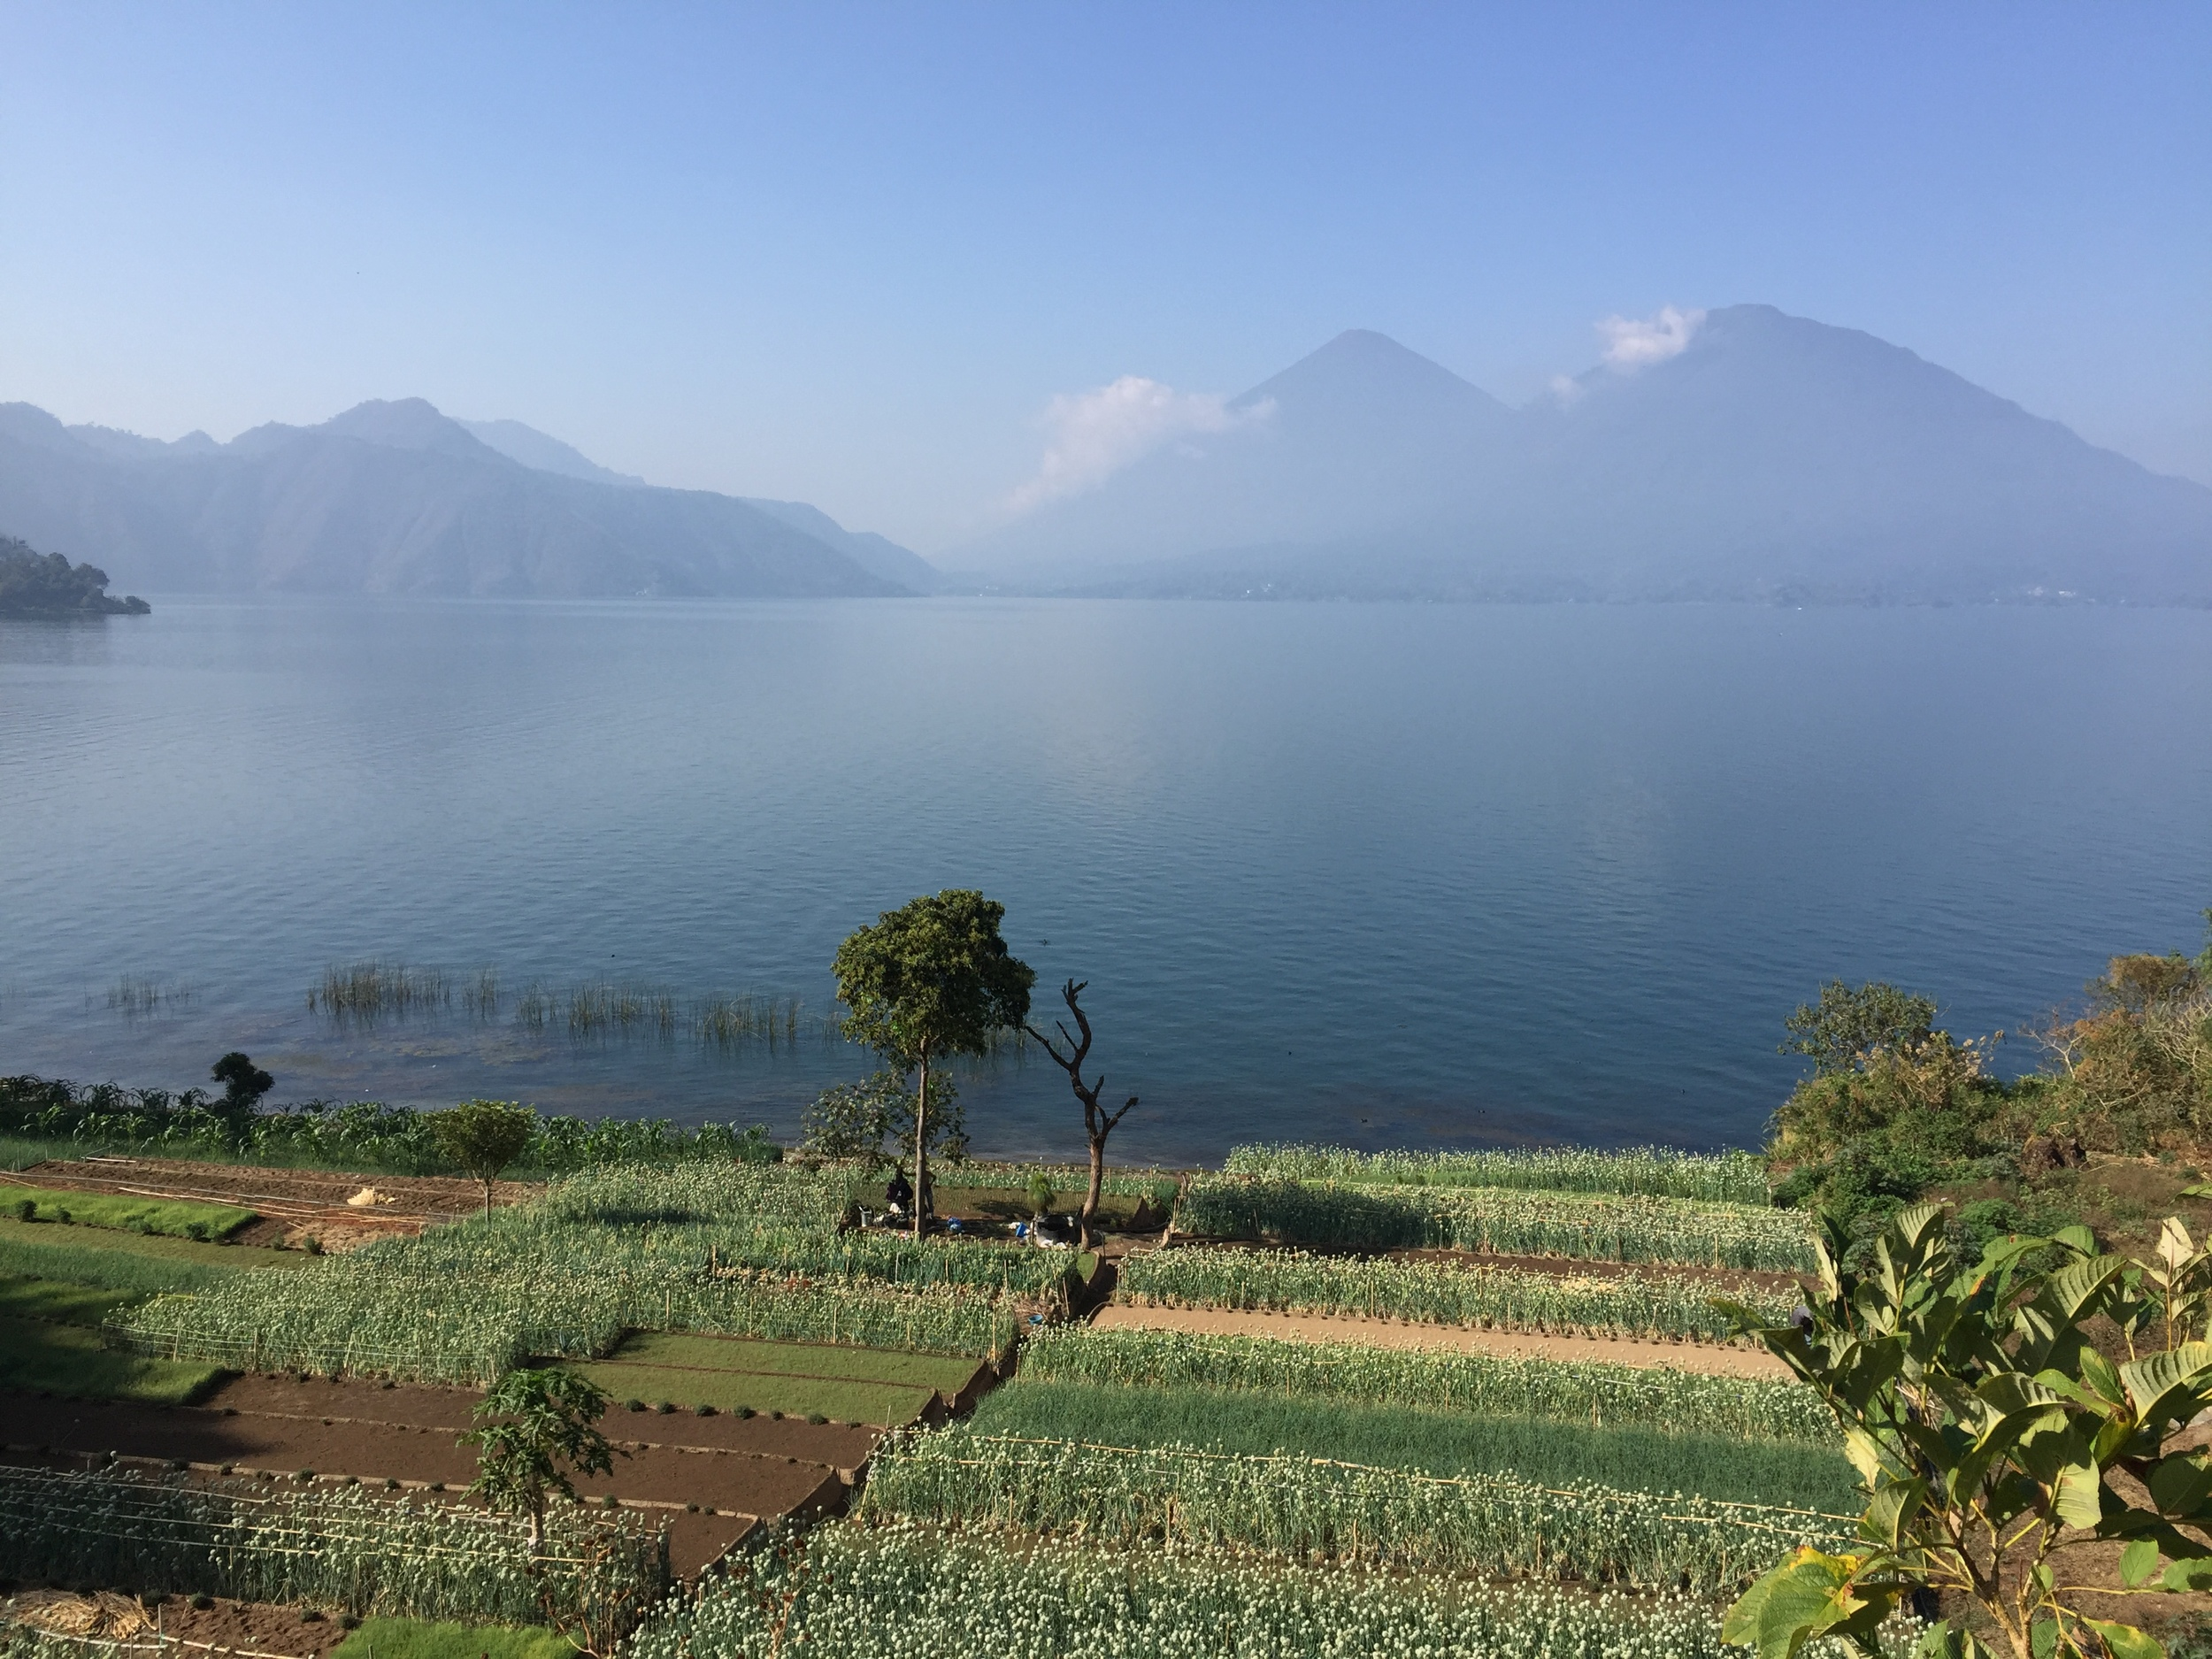 Vegetable farm along the edge of Lake Atitlan...you can see volcanoes in the background.